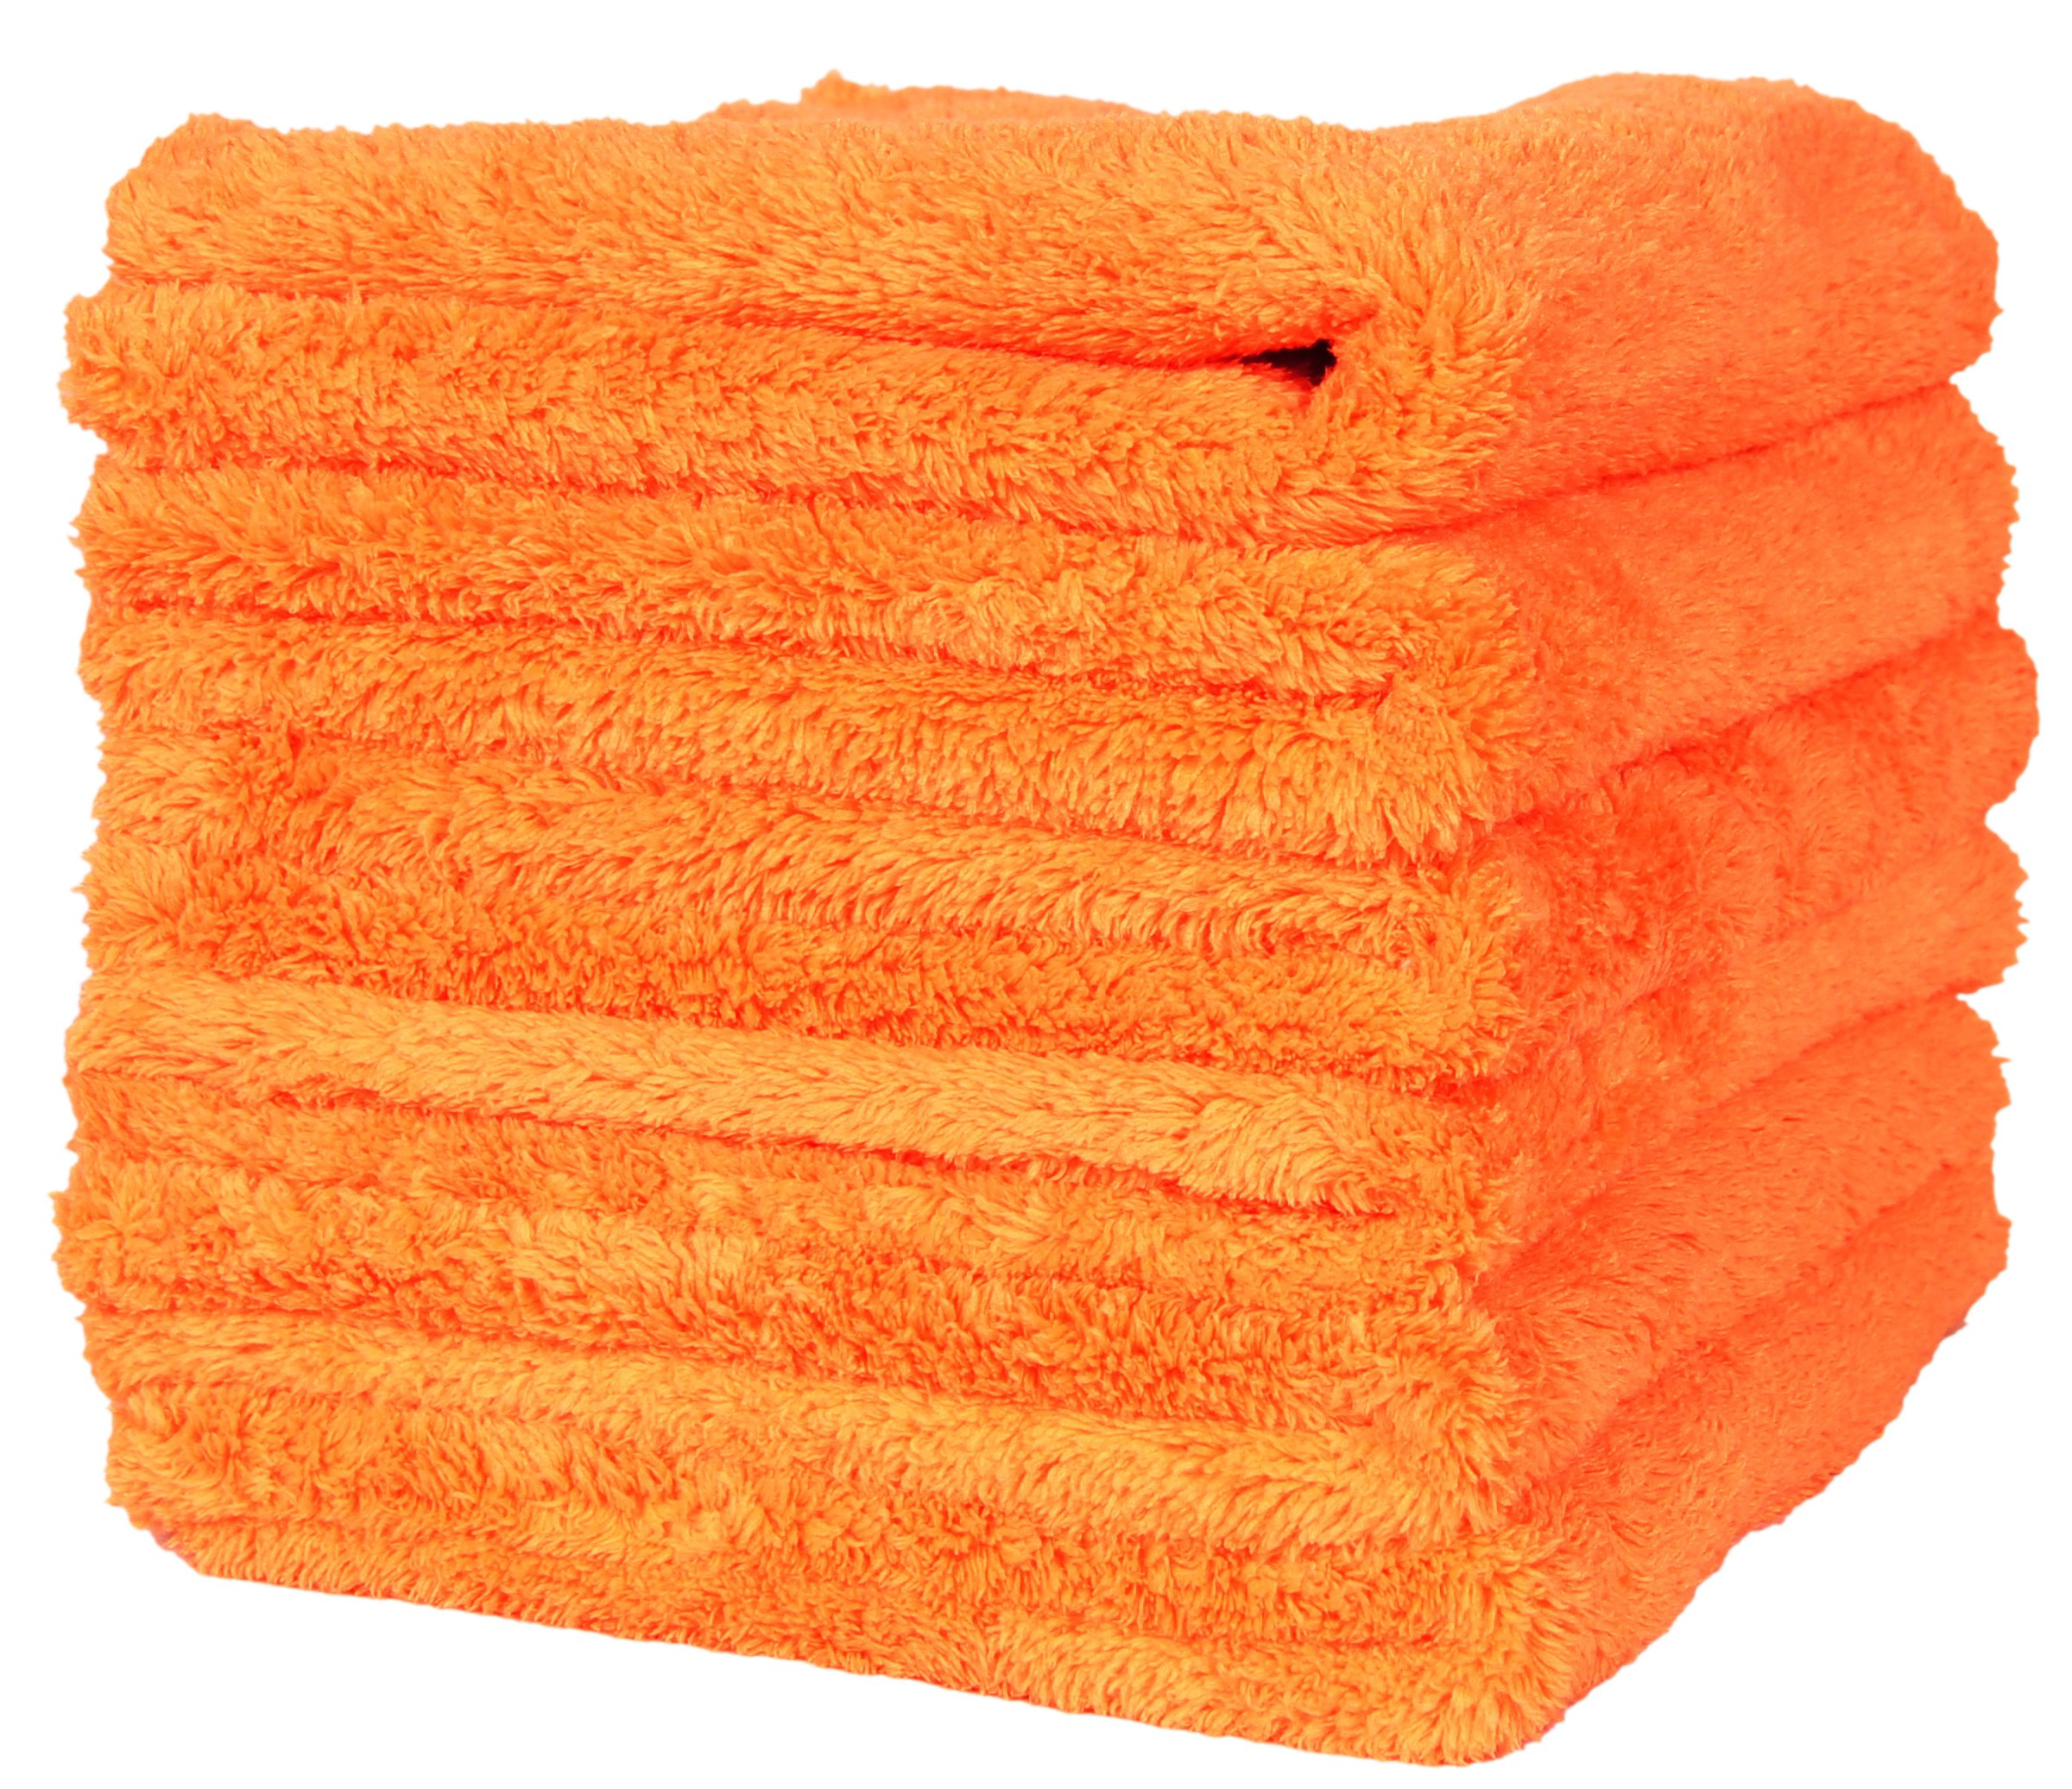 LANTEENSHOW (6-Pack) 16x16 inches Professional Korea 80/20 Blend Super Ultra Plush Thick Microfiber Cleaning Towels For Car Wash,500 GSM Edgeless (16x16 Inches) (orange)